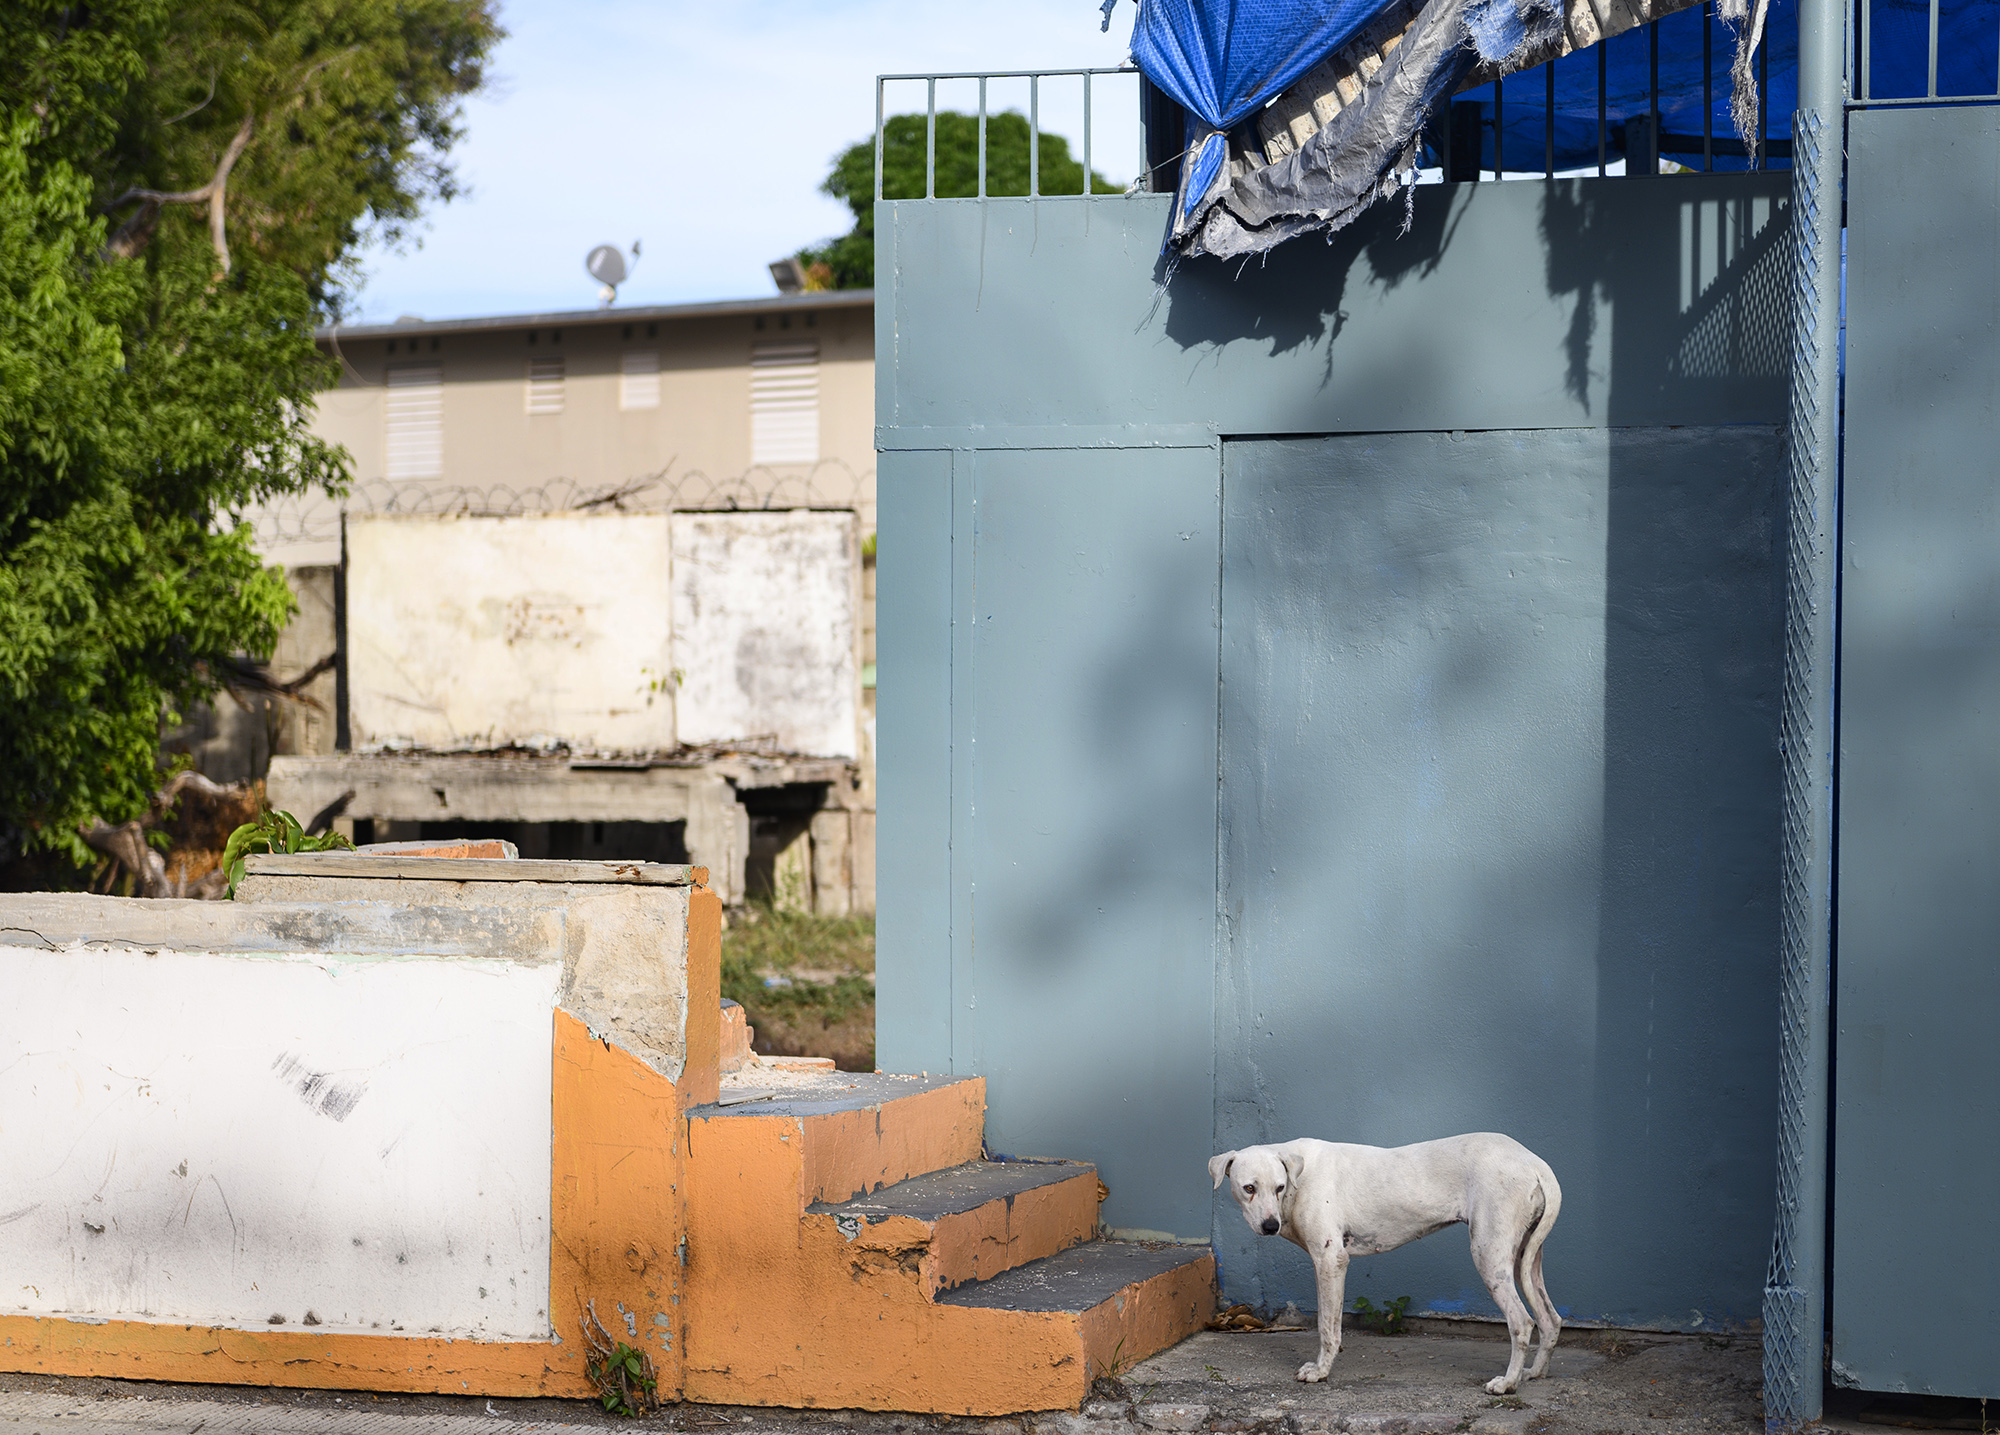 Stray dog in Ponce, Puerto Rico. Photo by Caitlin Lee